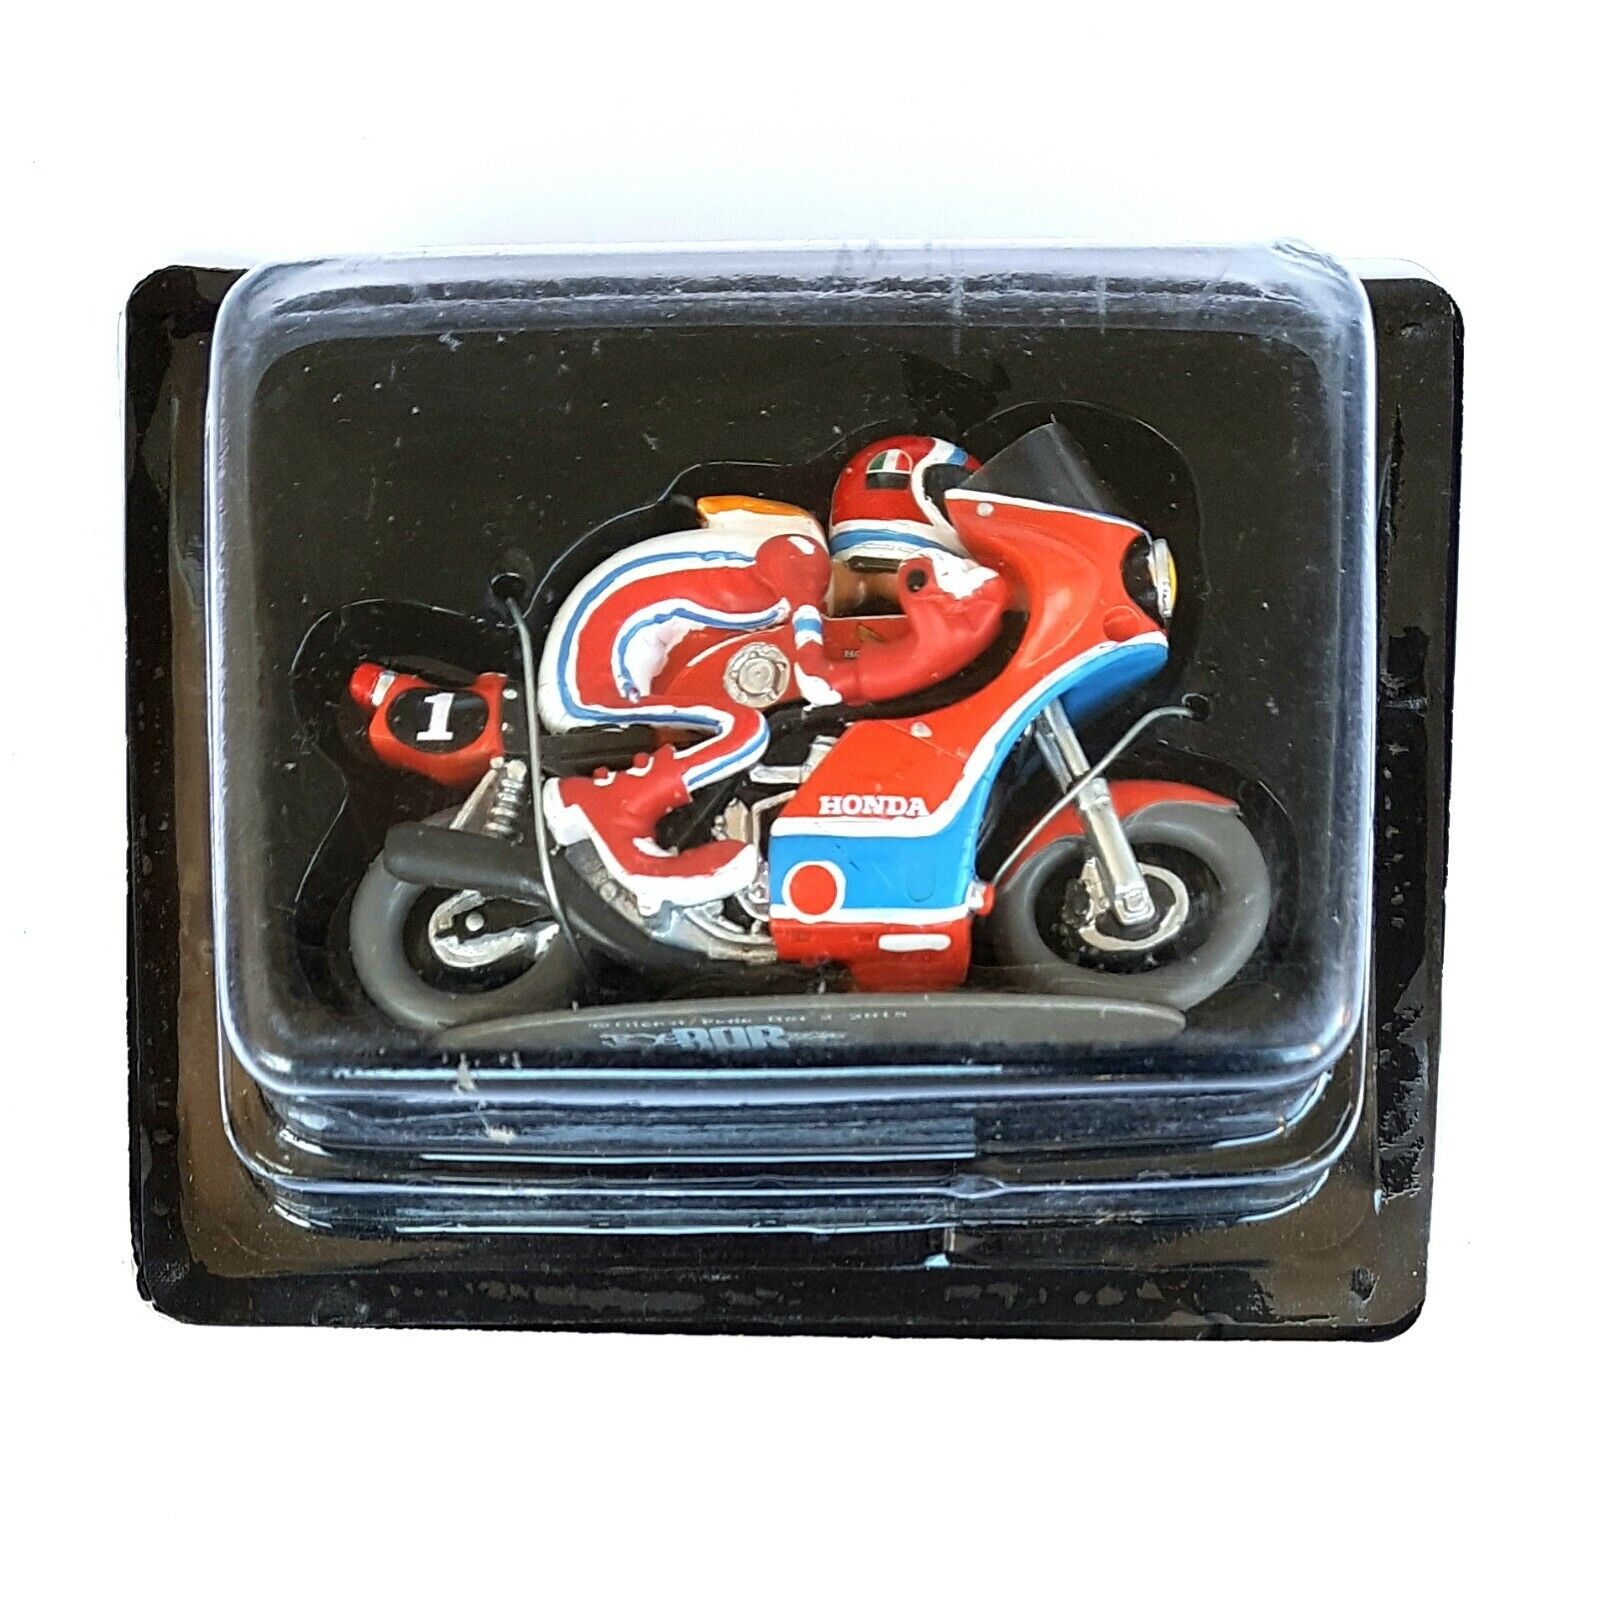 FIGURINE COLLECTION JOE BAR TEAM SERIE SERIE SERIE 2 N°38 CHRIS LEON FOREVER HONDA 1000 RCB 4c84ec